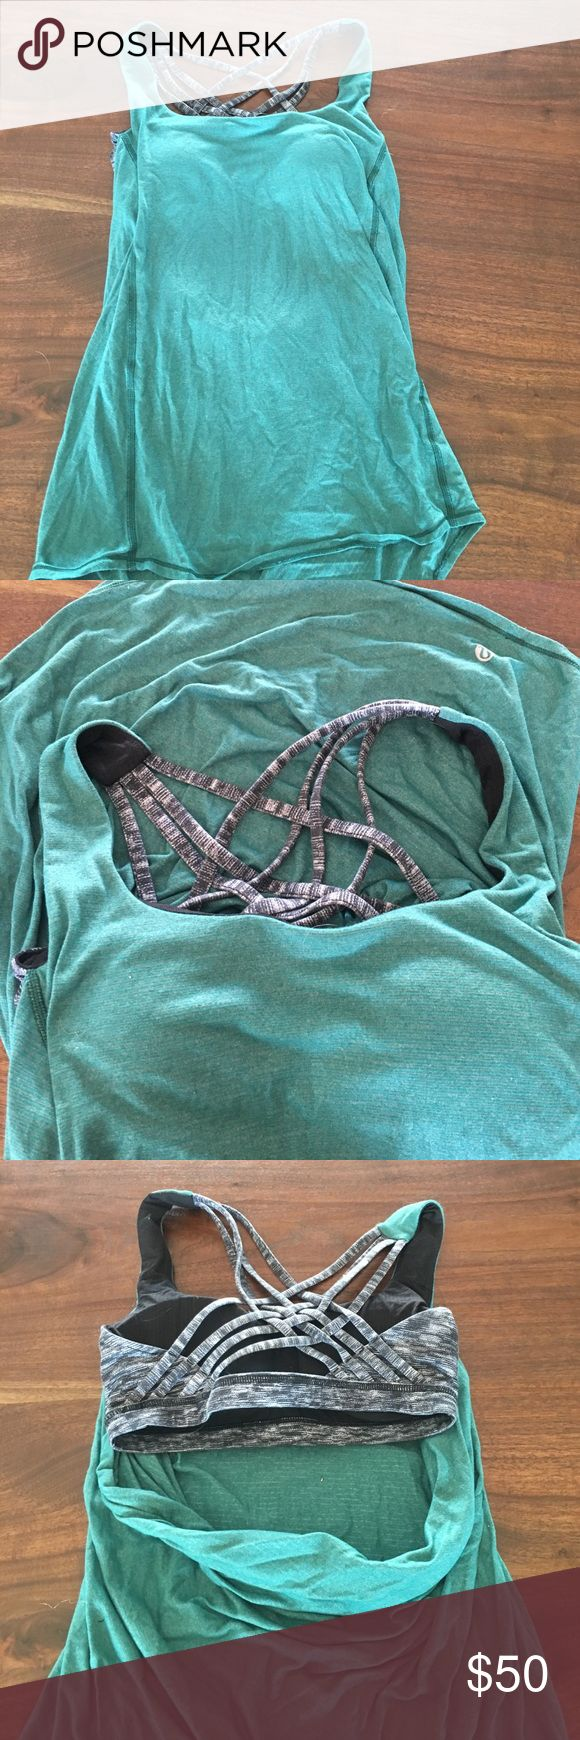 Lululemon tank Drop back built in sports bra and tank top in one!! Beautiful teal color with a black and white built in sports bra!! Rarely worn GREAT CONDITION ✅GET THE SET LULULEMON LEGGING ALSO FOR SALE IN MY CLOSET✅ lululemon athletica Tops Tank Tops